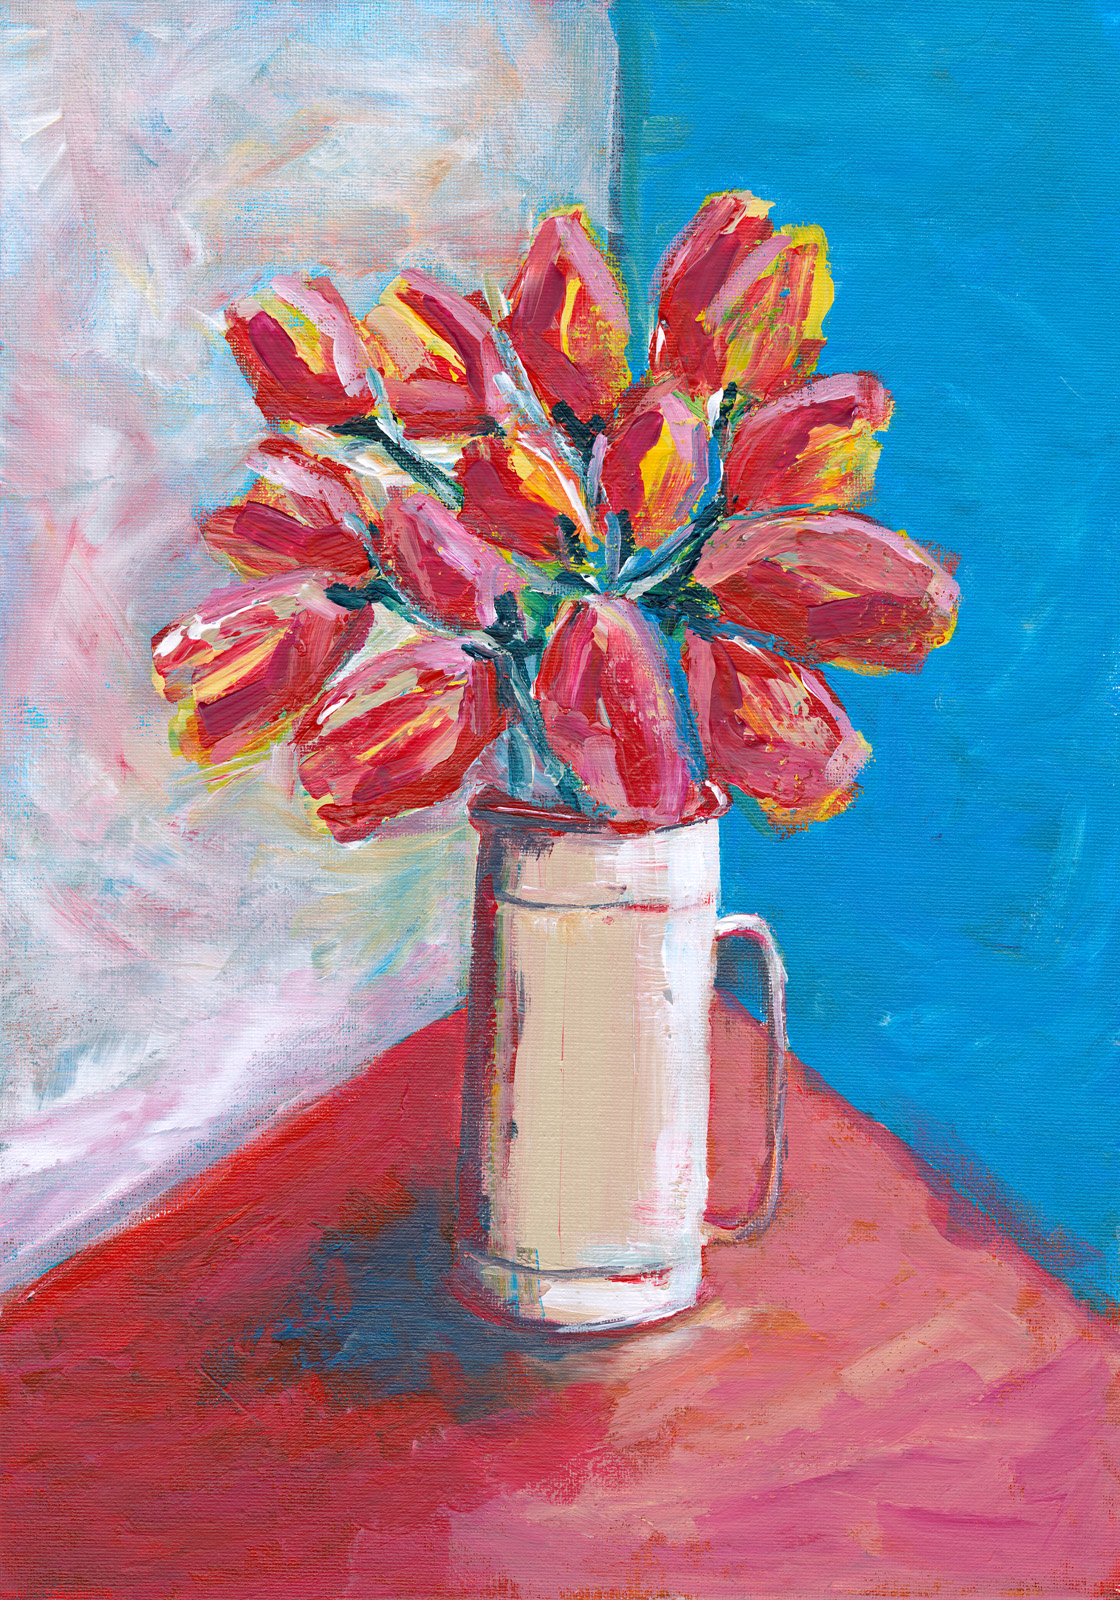 Abstract Tulips by Deborah Copeland